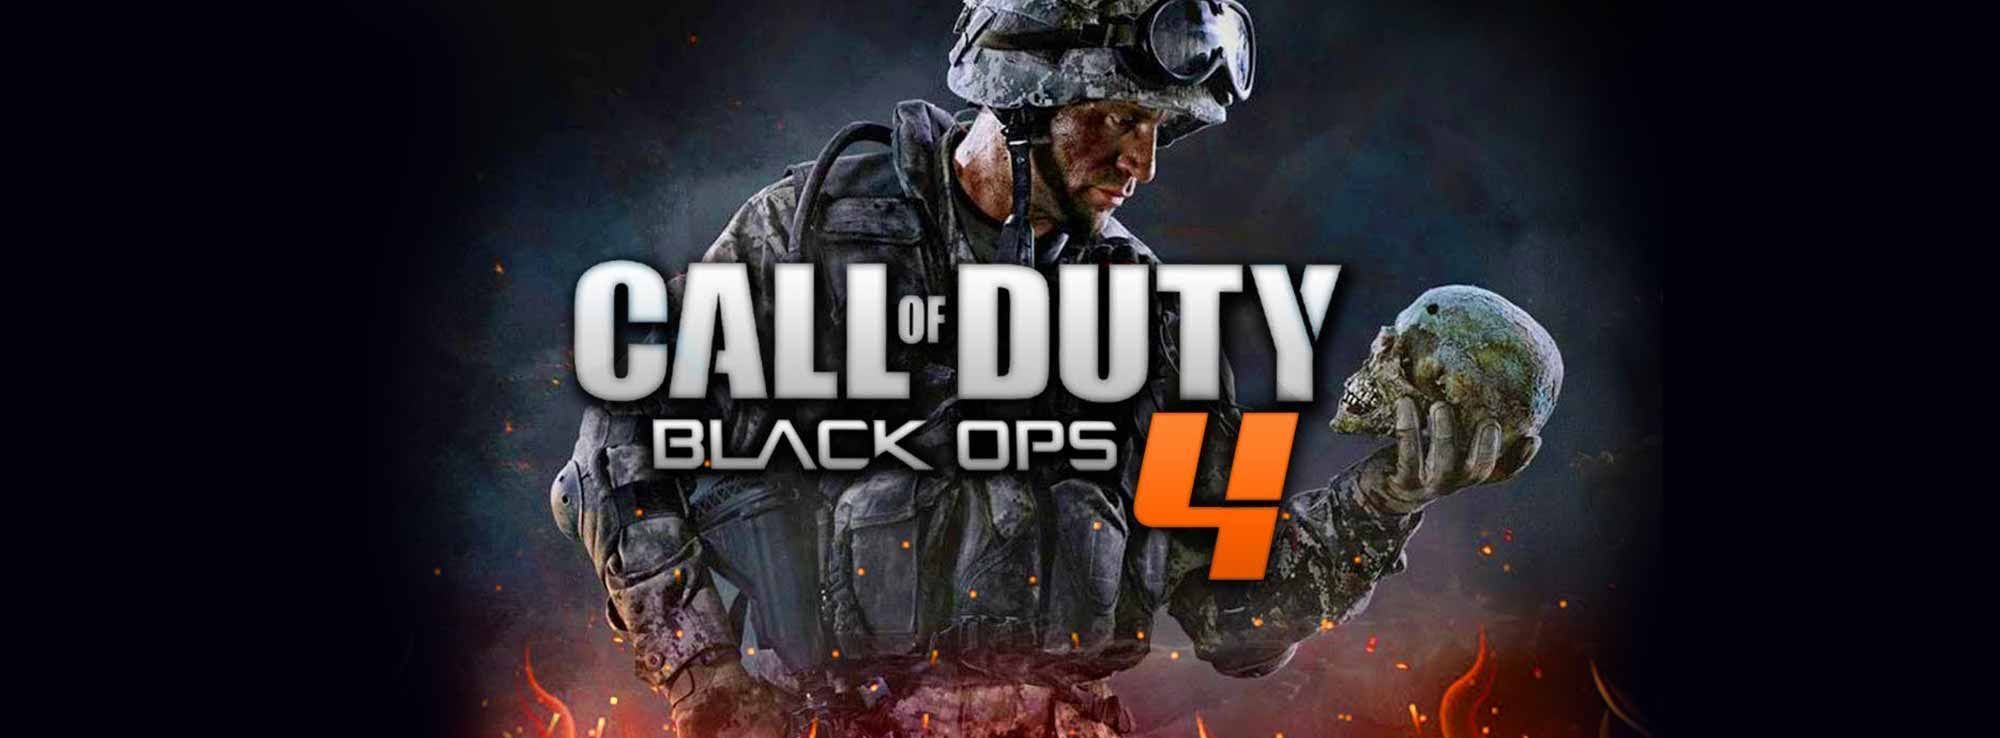 Call Of Duty Black Ops 4 Wallpaper Call Of Duty Black Call Of Duty Black Ops 4 Call Of Duty